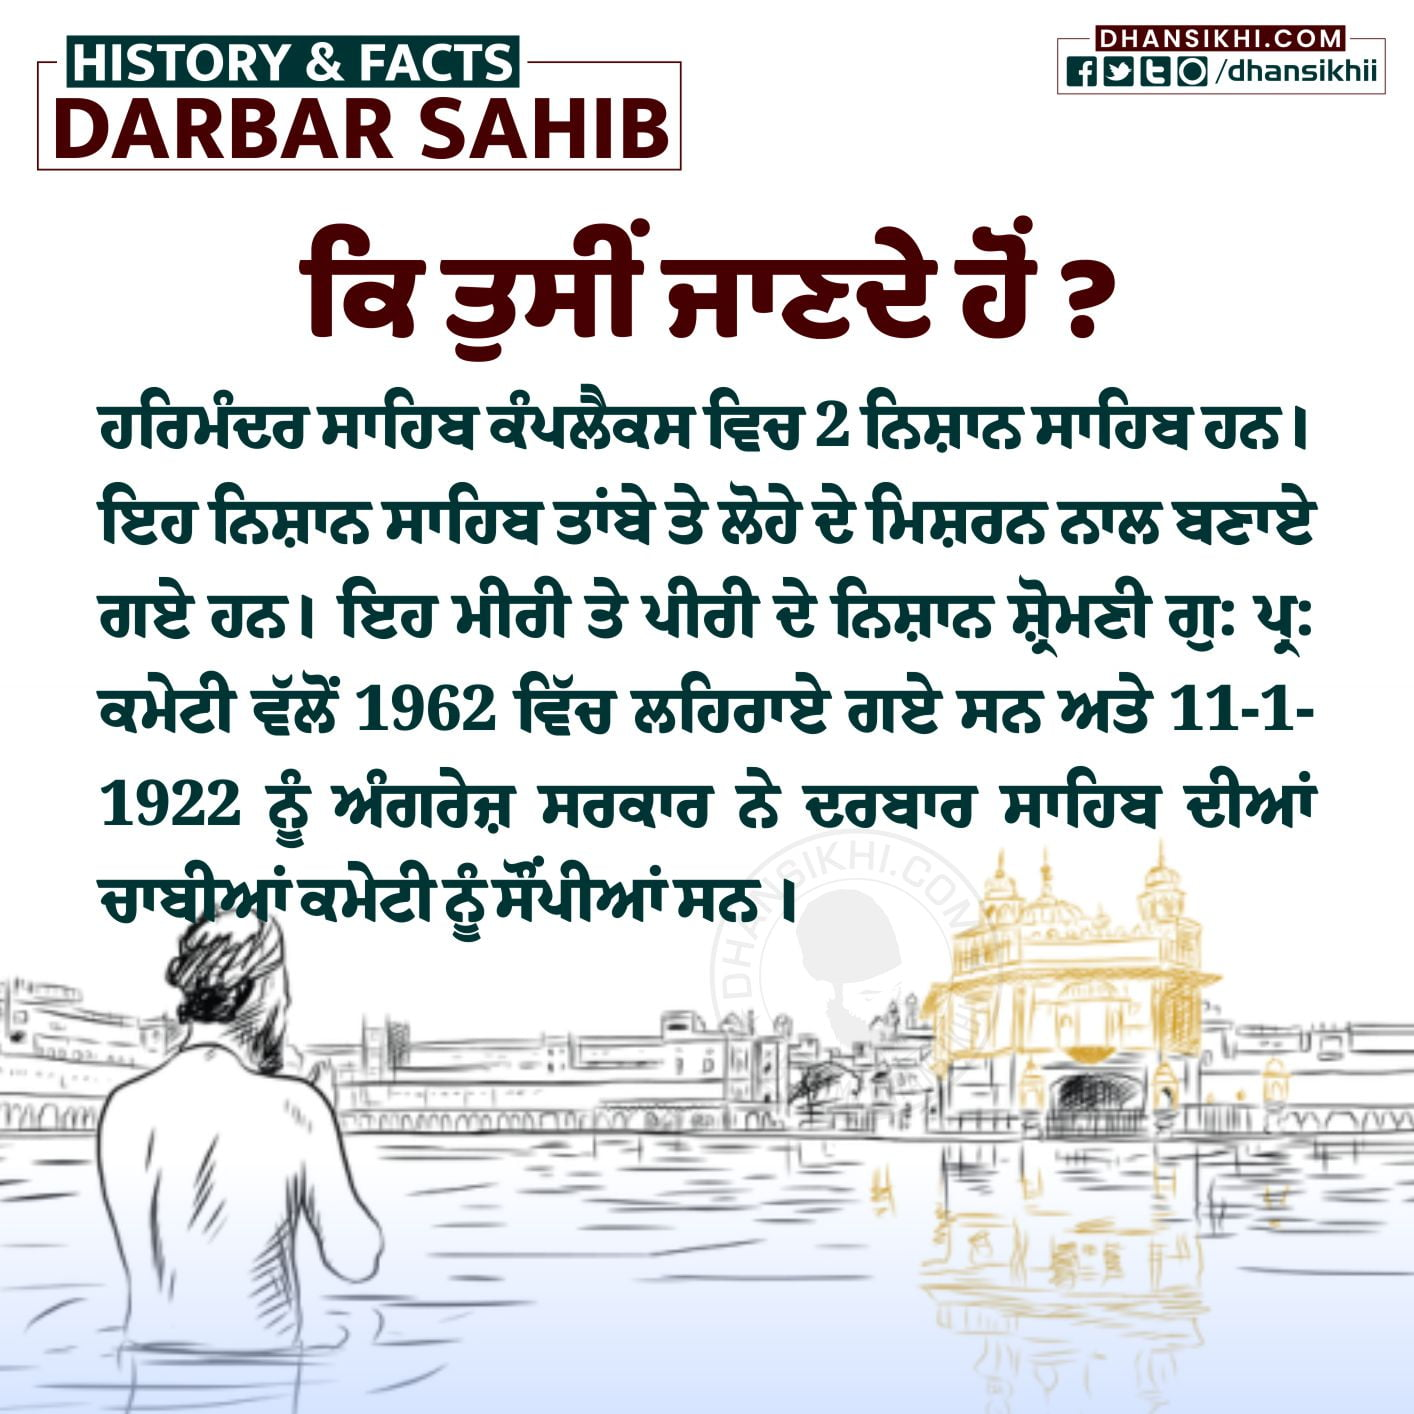 Interesting Facts and History of Darbar Sahib Complex - Dhansikhi